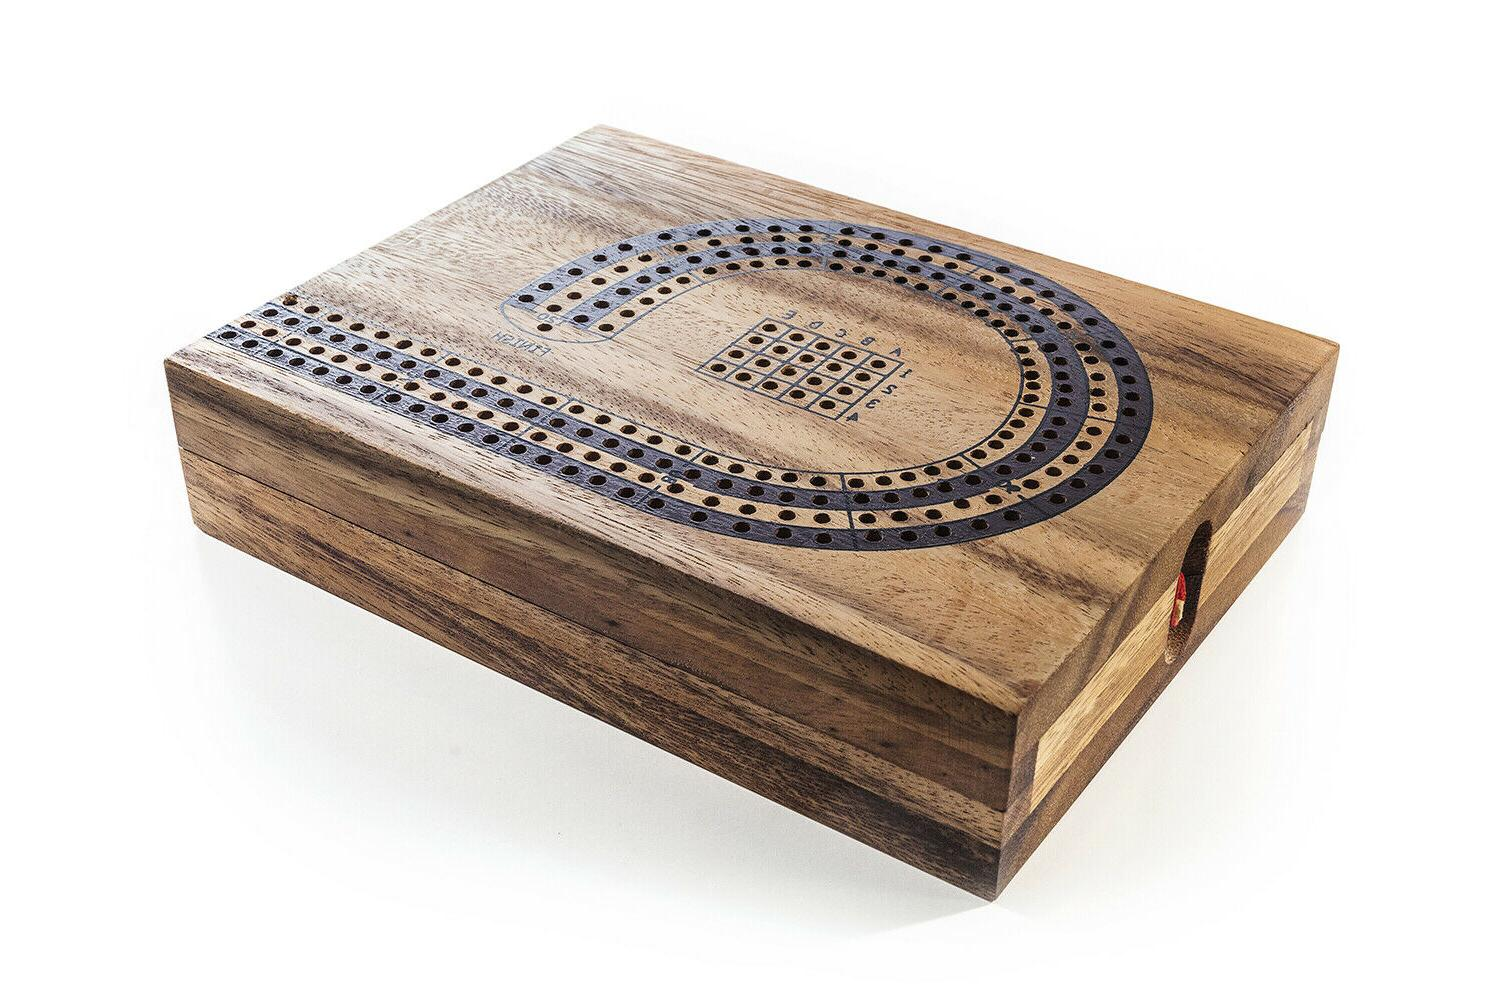 4 player cribbage strategy game wooden board